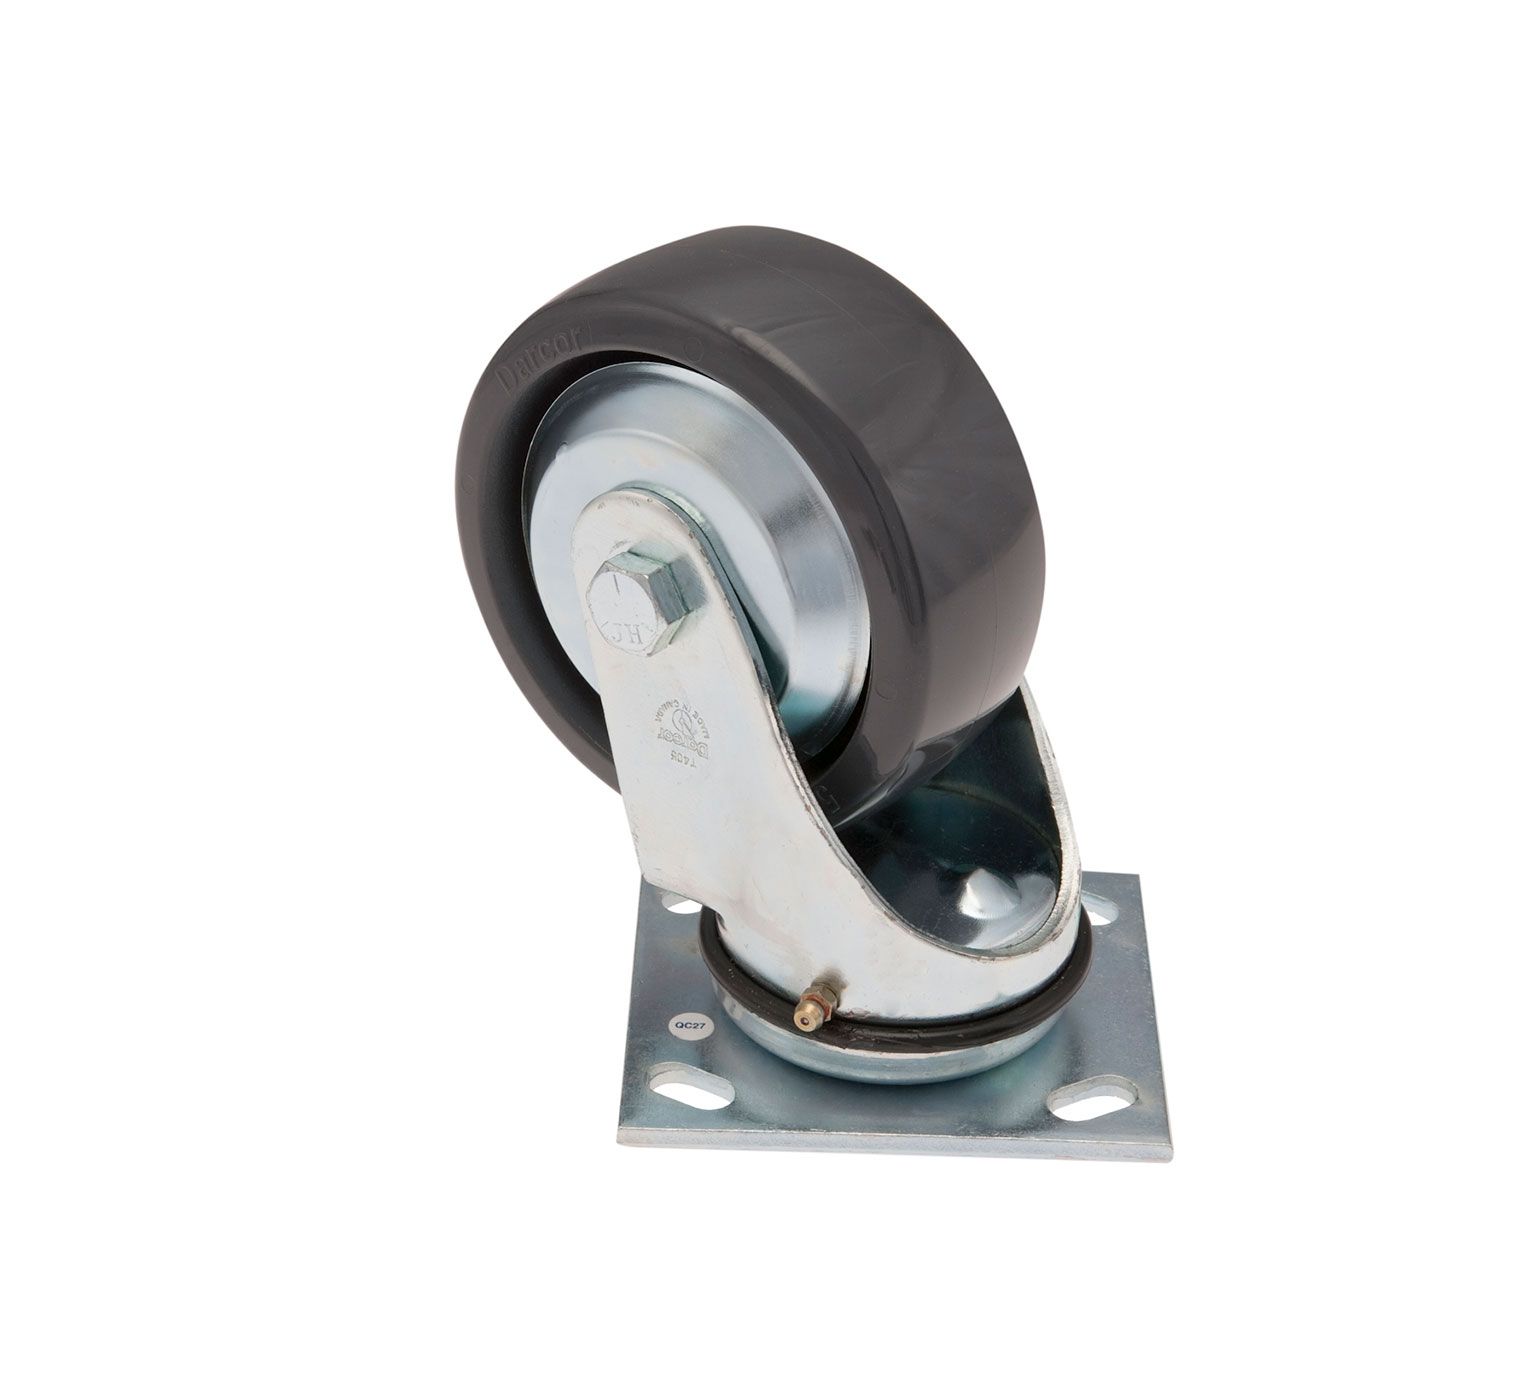 Tennant 1049046 OEM Solid Swivel Caster 5.0D 2.0W